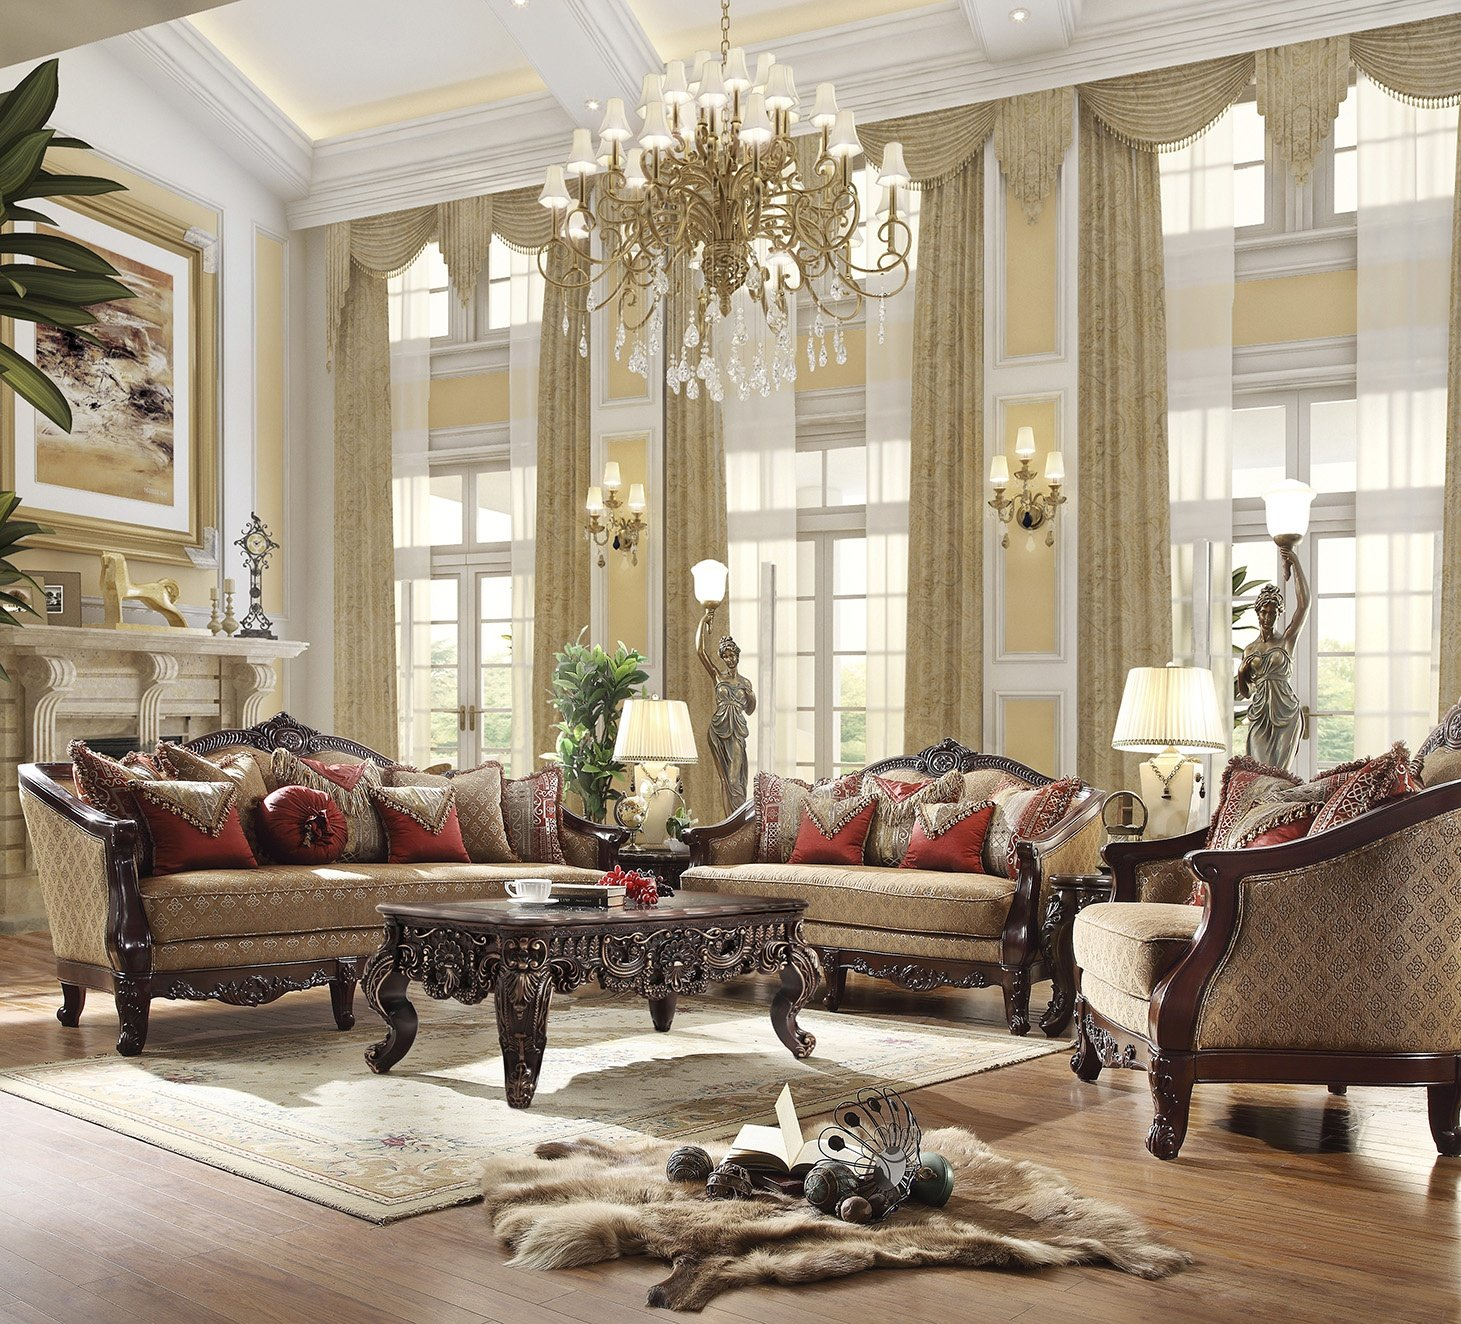 Traditional Living Room Set 3 PCS in Brown Fabric Traditional Style Homey Design HD-2655